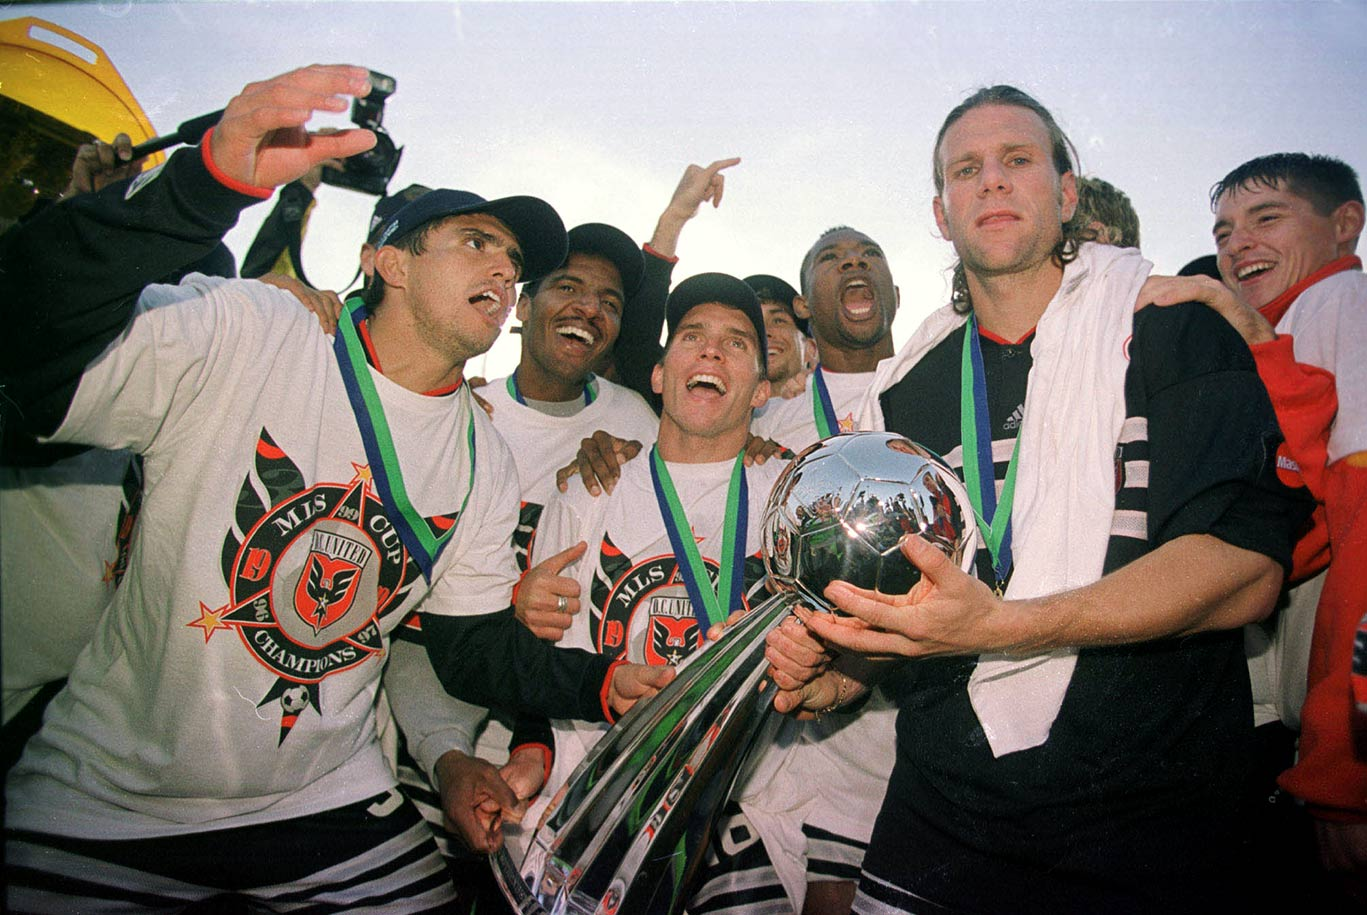 <p>1999 — D.C. United (beat LA Galaxy 2-0)</p>